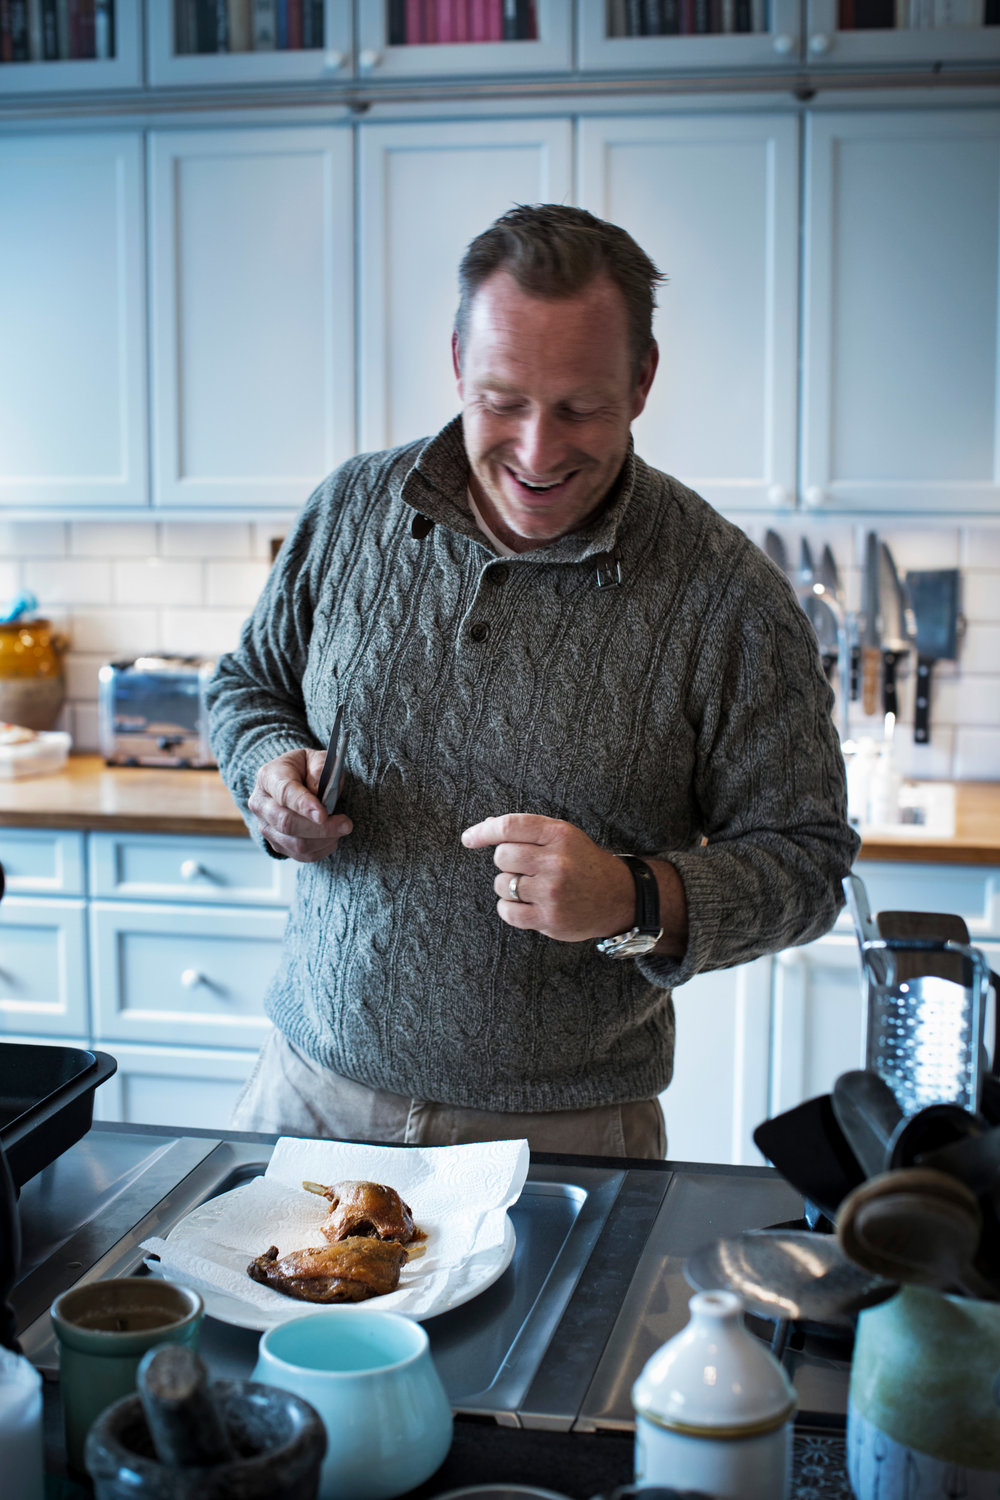 Adam Price builds up the perfect salad with duck confit for an article on his favourite Christmas dishes . He also made us a scoop of homemade vanilla icecream. Sublime.